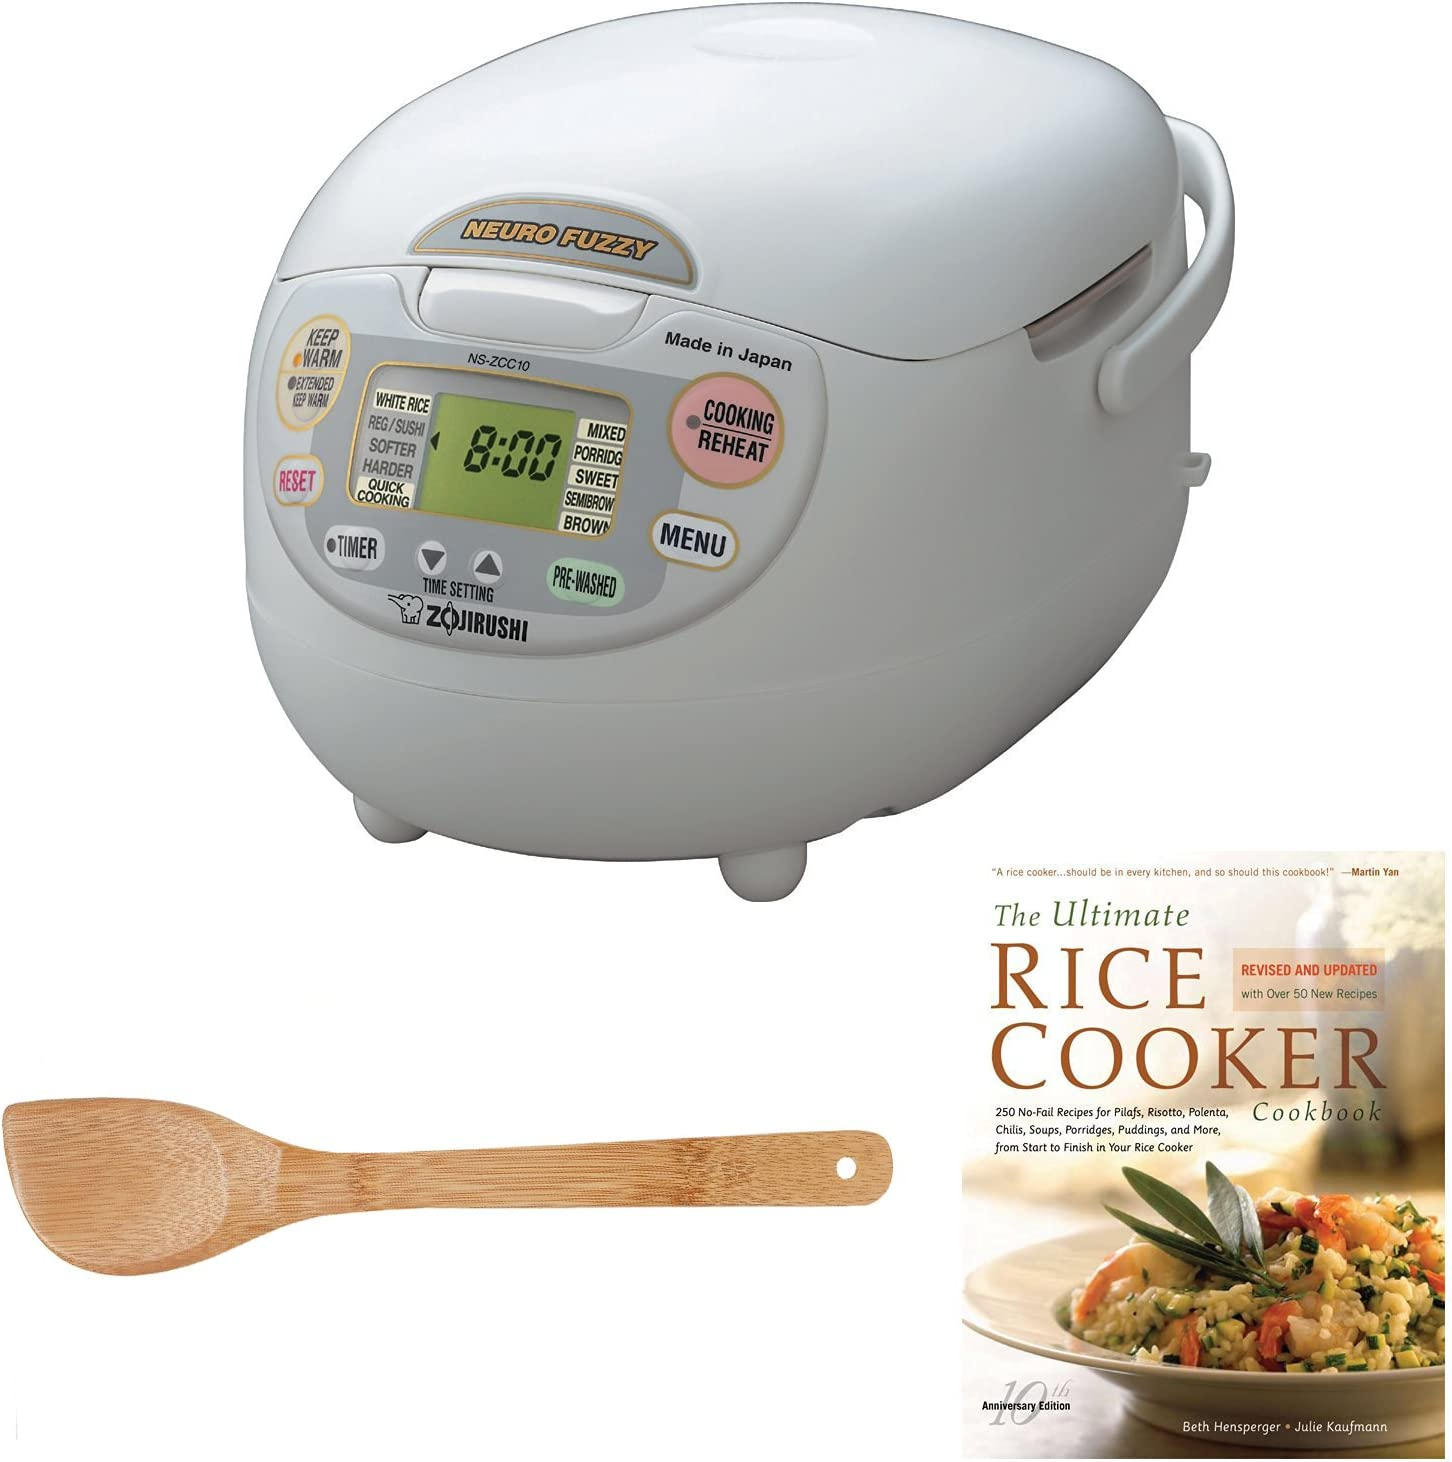 Zojirushi NS-ZCC10 Neuro Fuzzy Rice Cooker & Warmer (1.0 Liter) Bundle with Wooden Tool Set and Cookbook